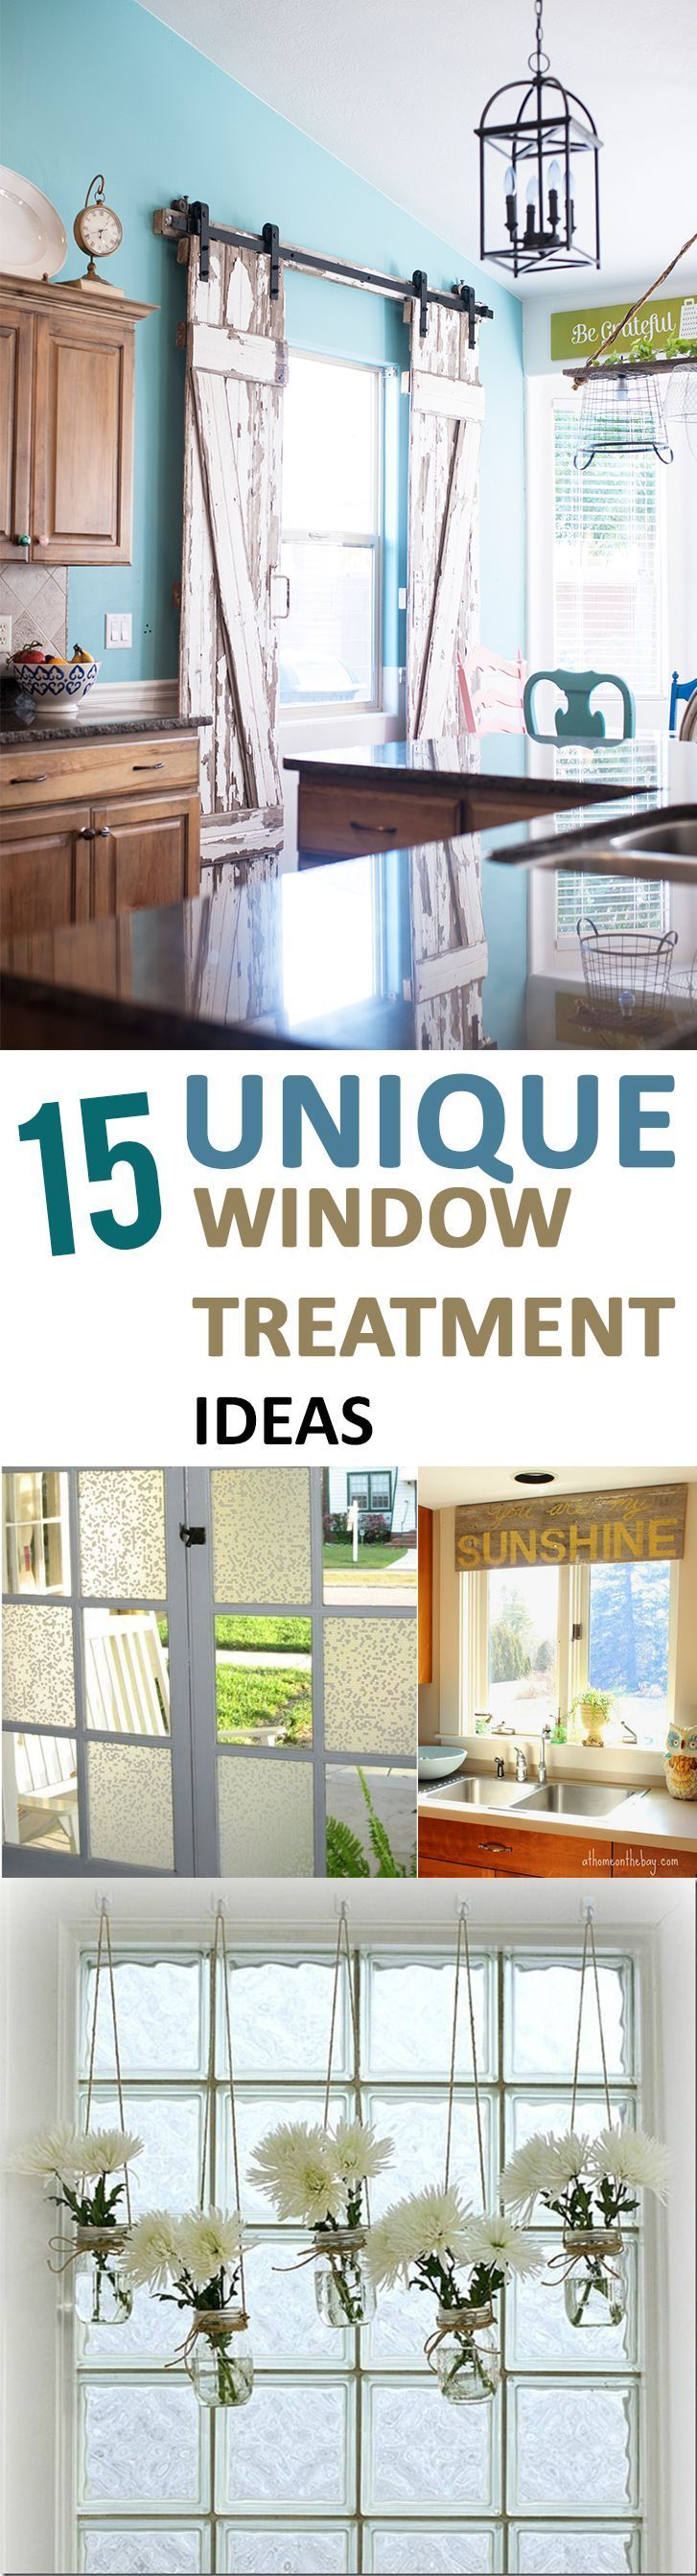 These perfect window treatment ideas are sure to spice up any room